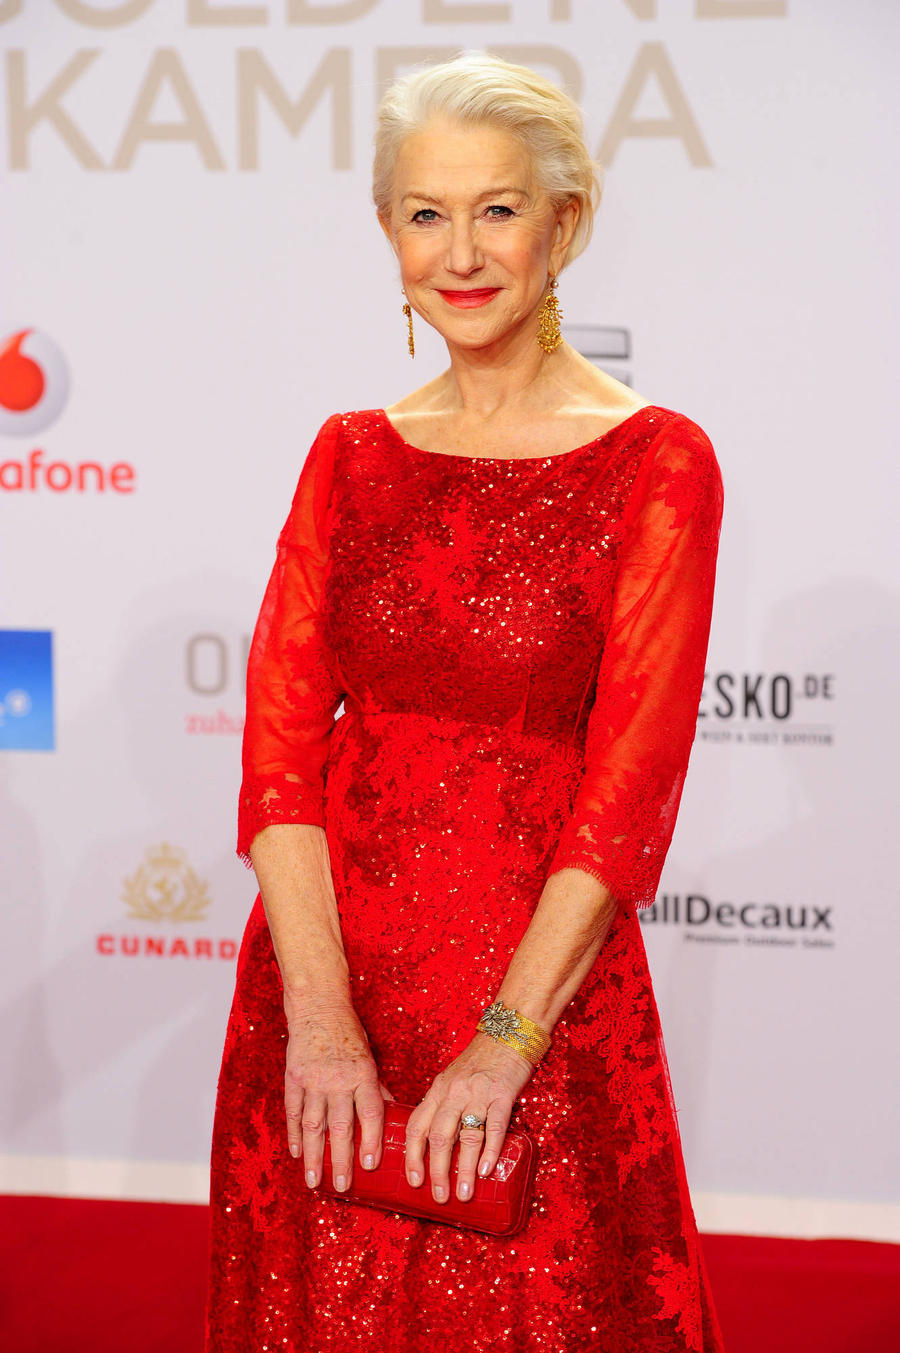 Helen Mirren To Help Mark Queen Elizabeth's 90th Birthday